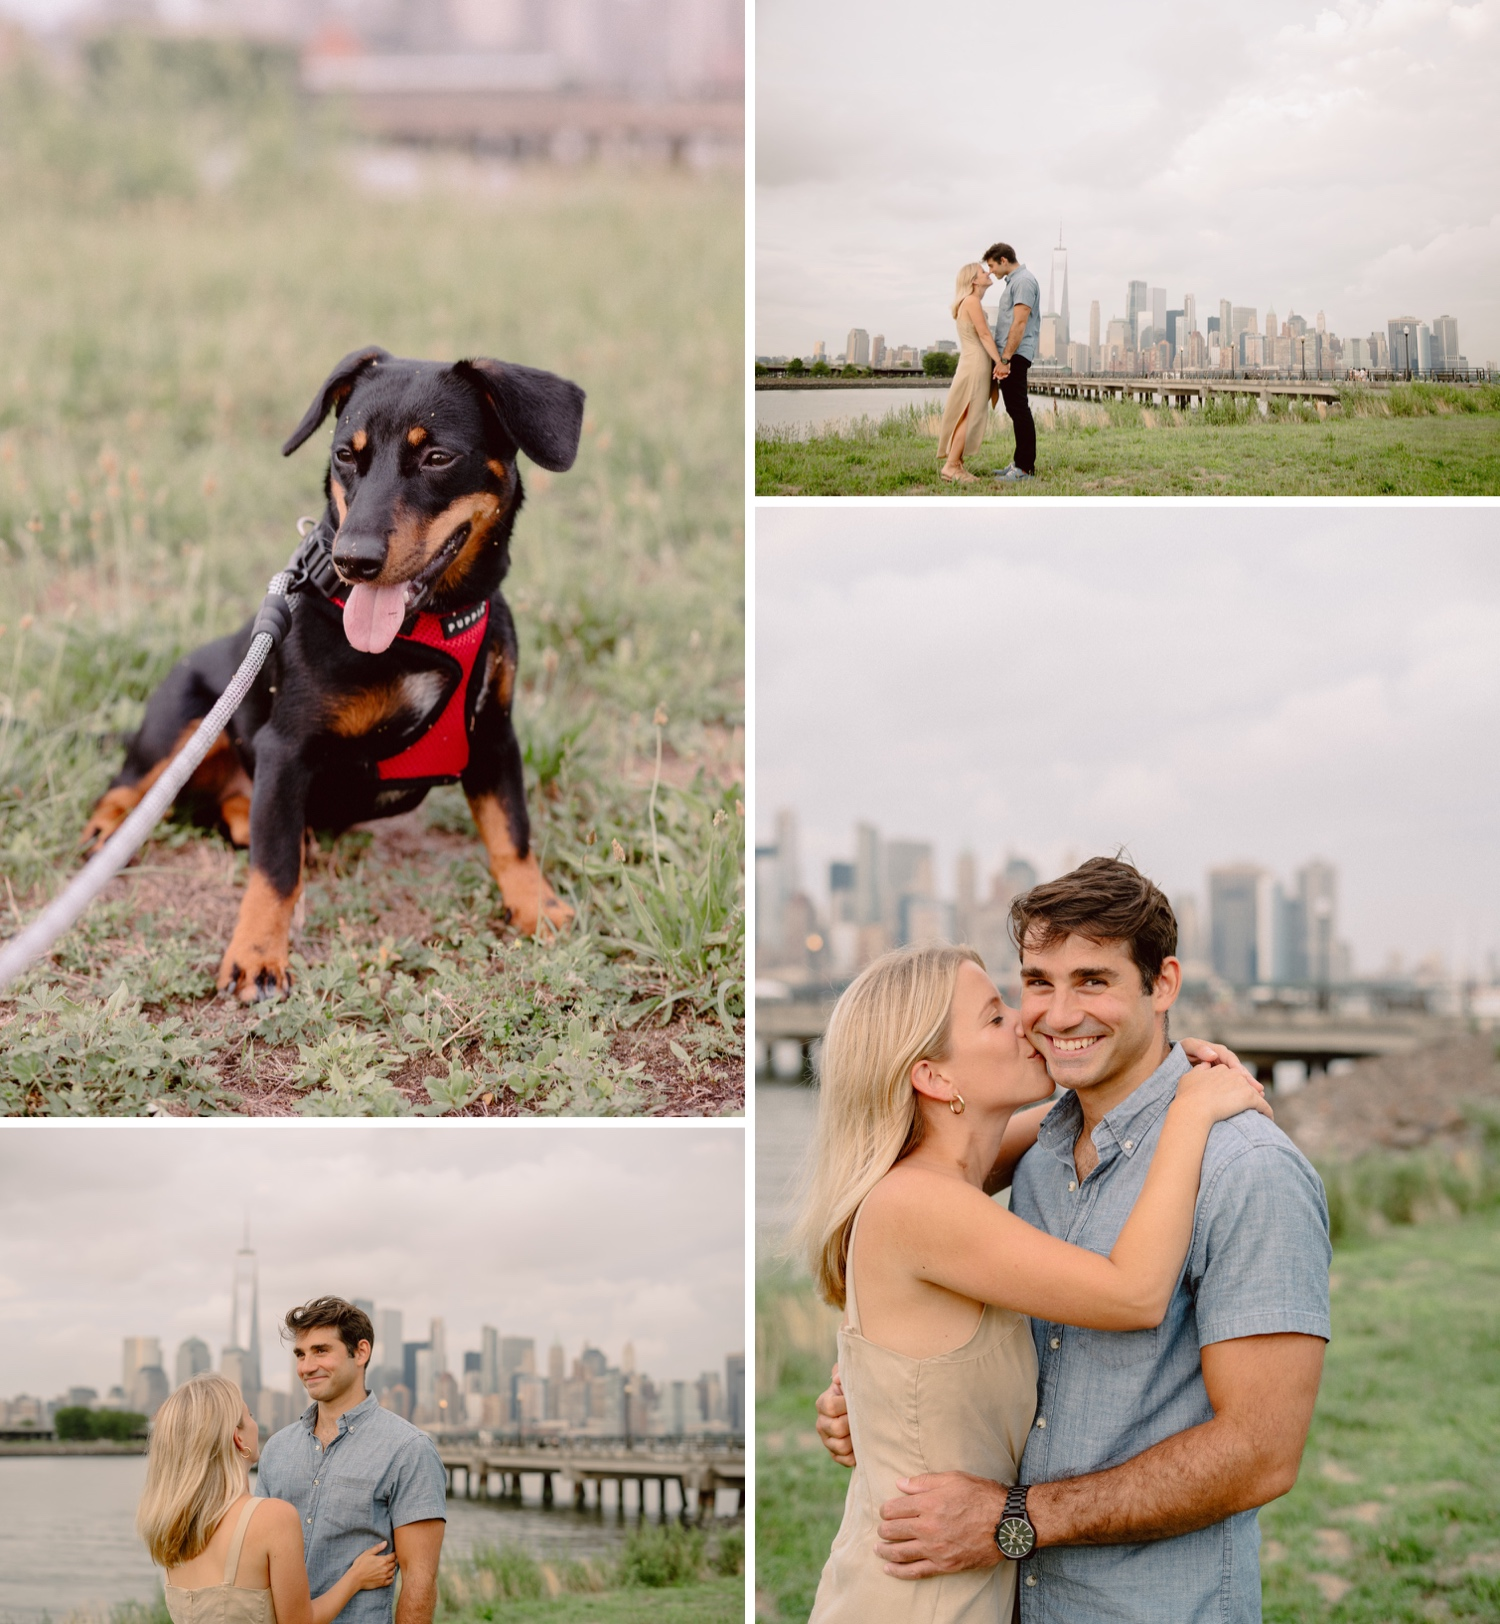 Engagement Session with dogs, Engagement Sessions with Dogs at Liberty State Park, Liberty State Park Engagement Session, Liberty State Park Wedding Photographer, NYC Wedding Photographer